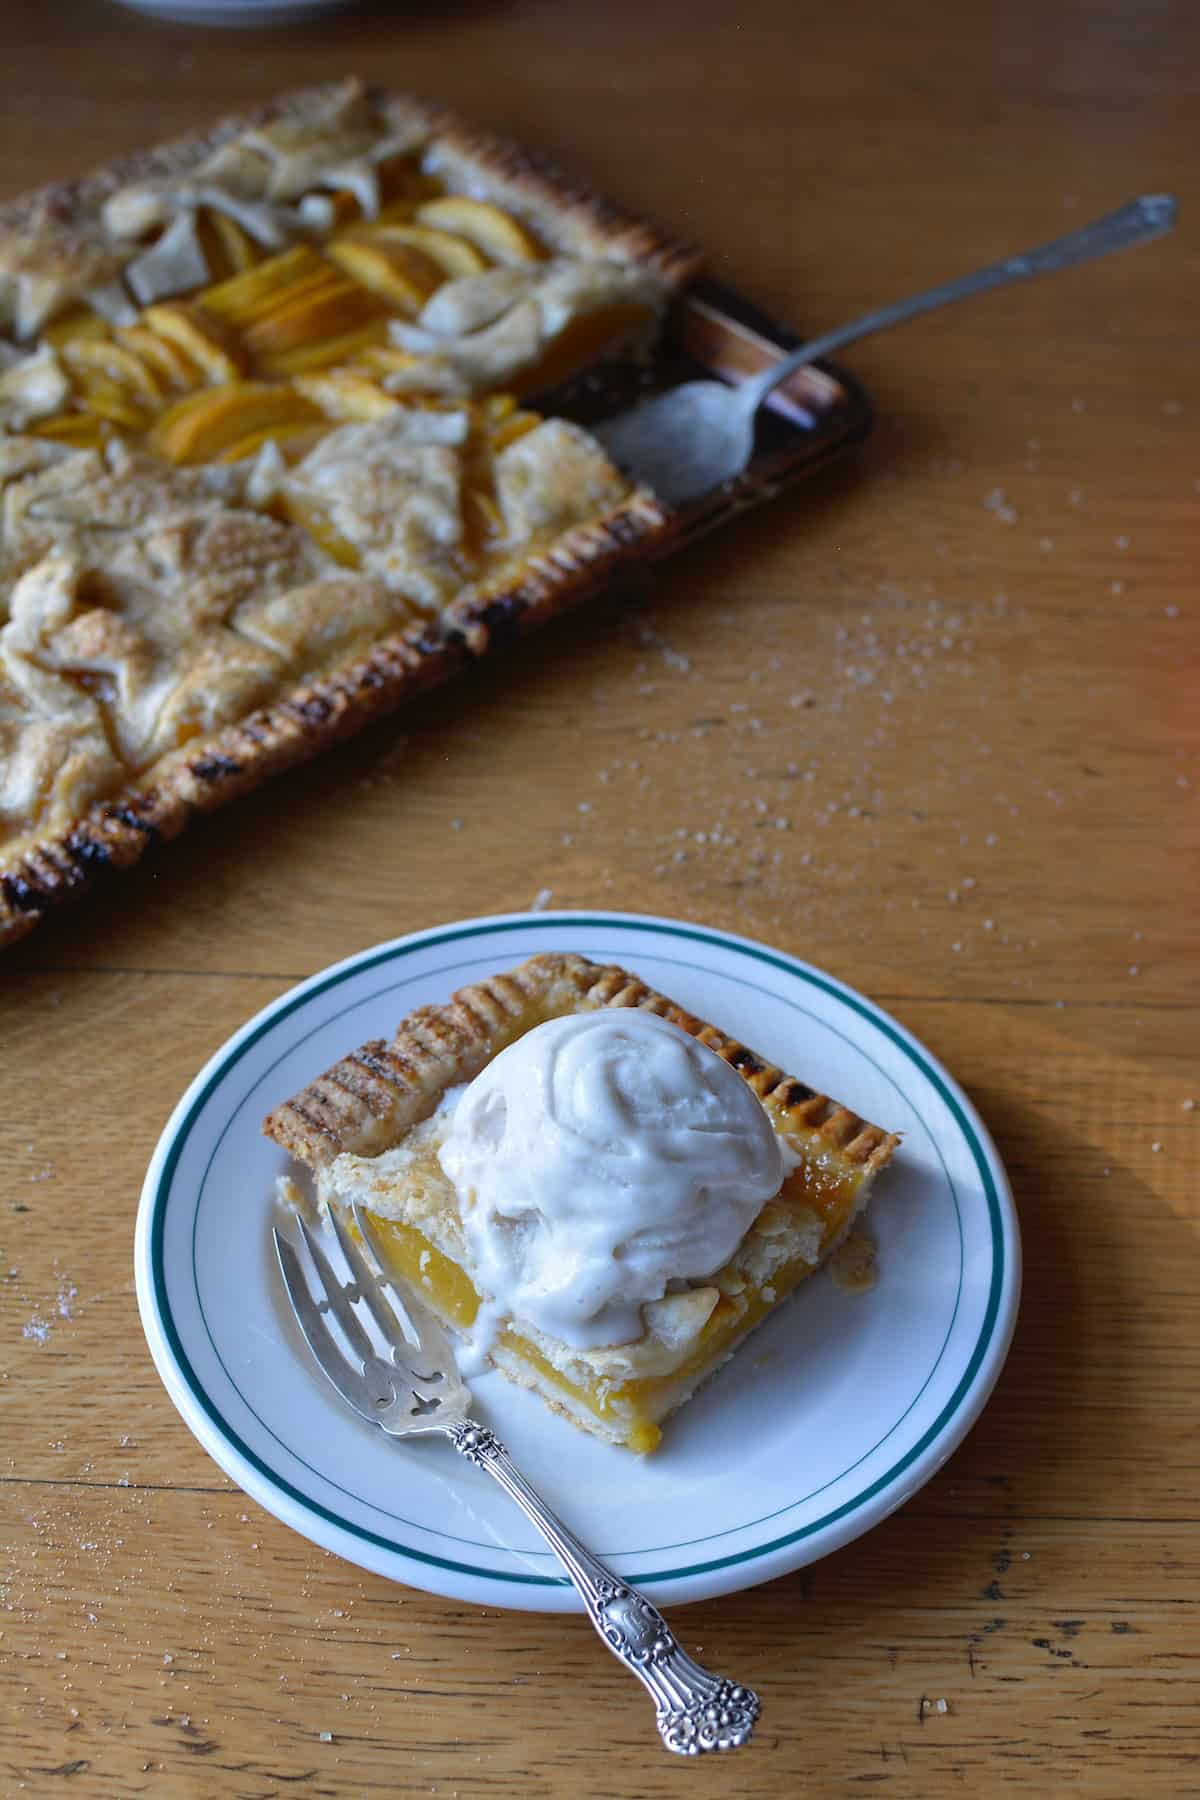 A piece of pie on a plate with a scoop of vanilla ice cream on top and a fork next to it sitting on a wooden table.